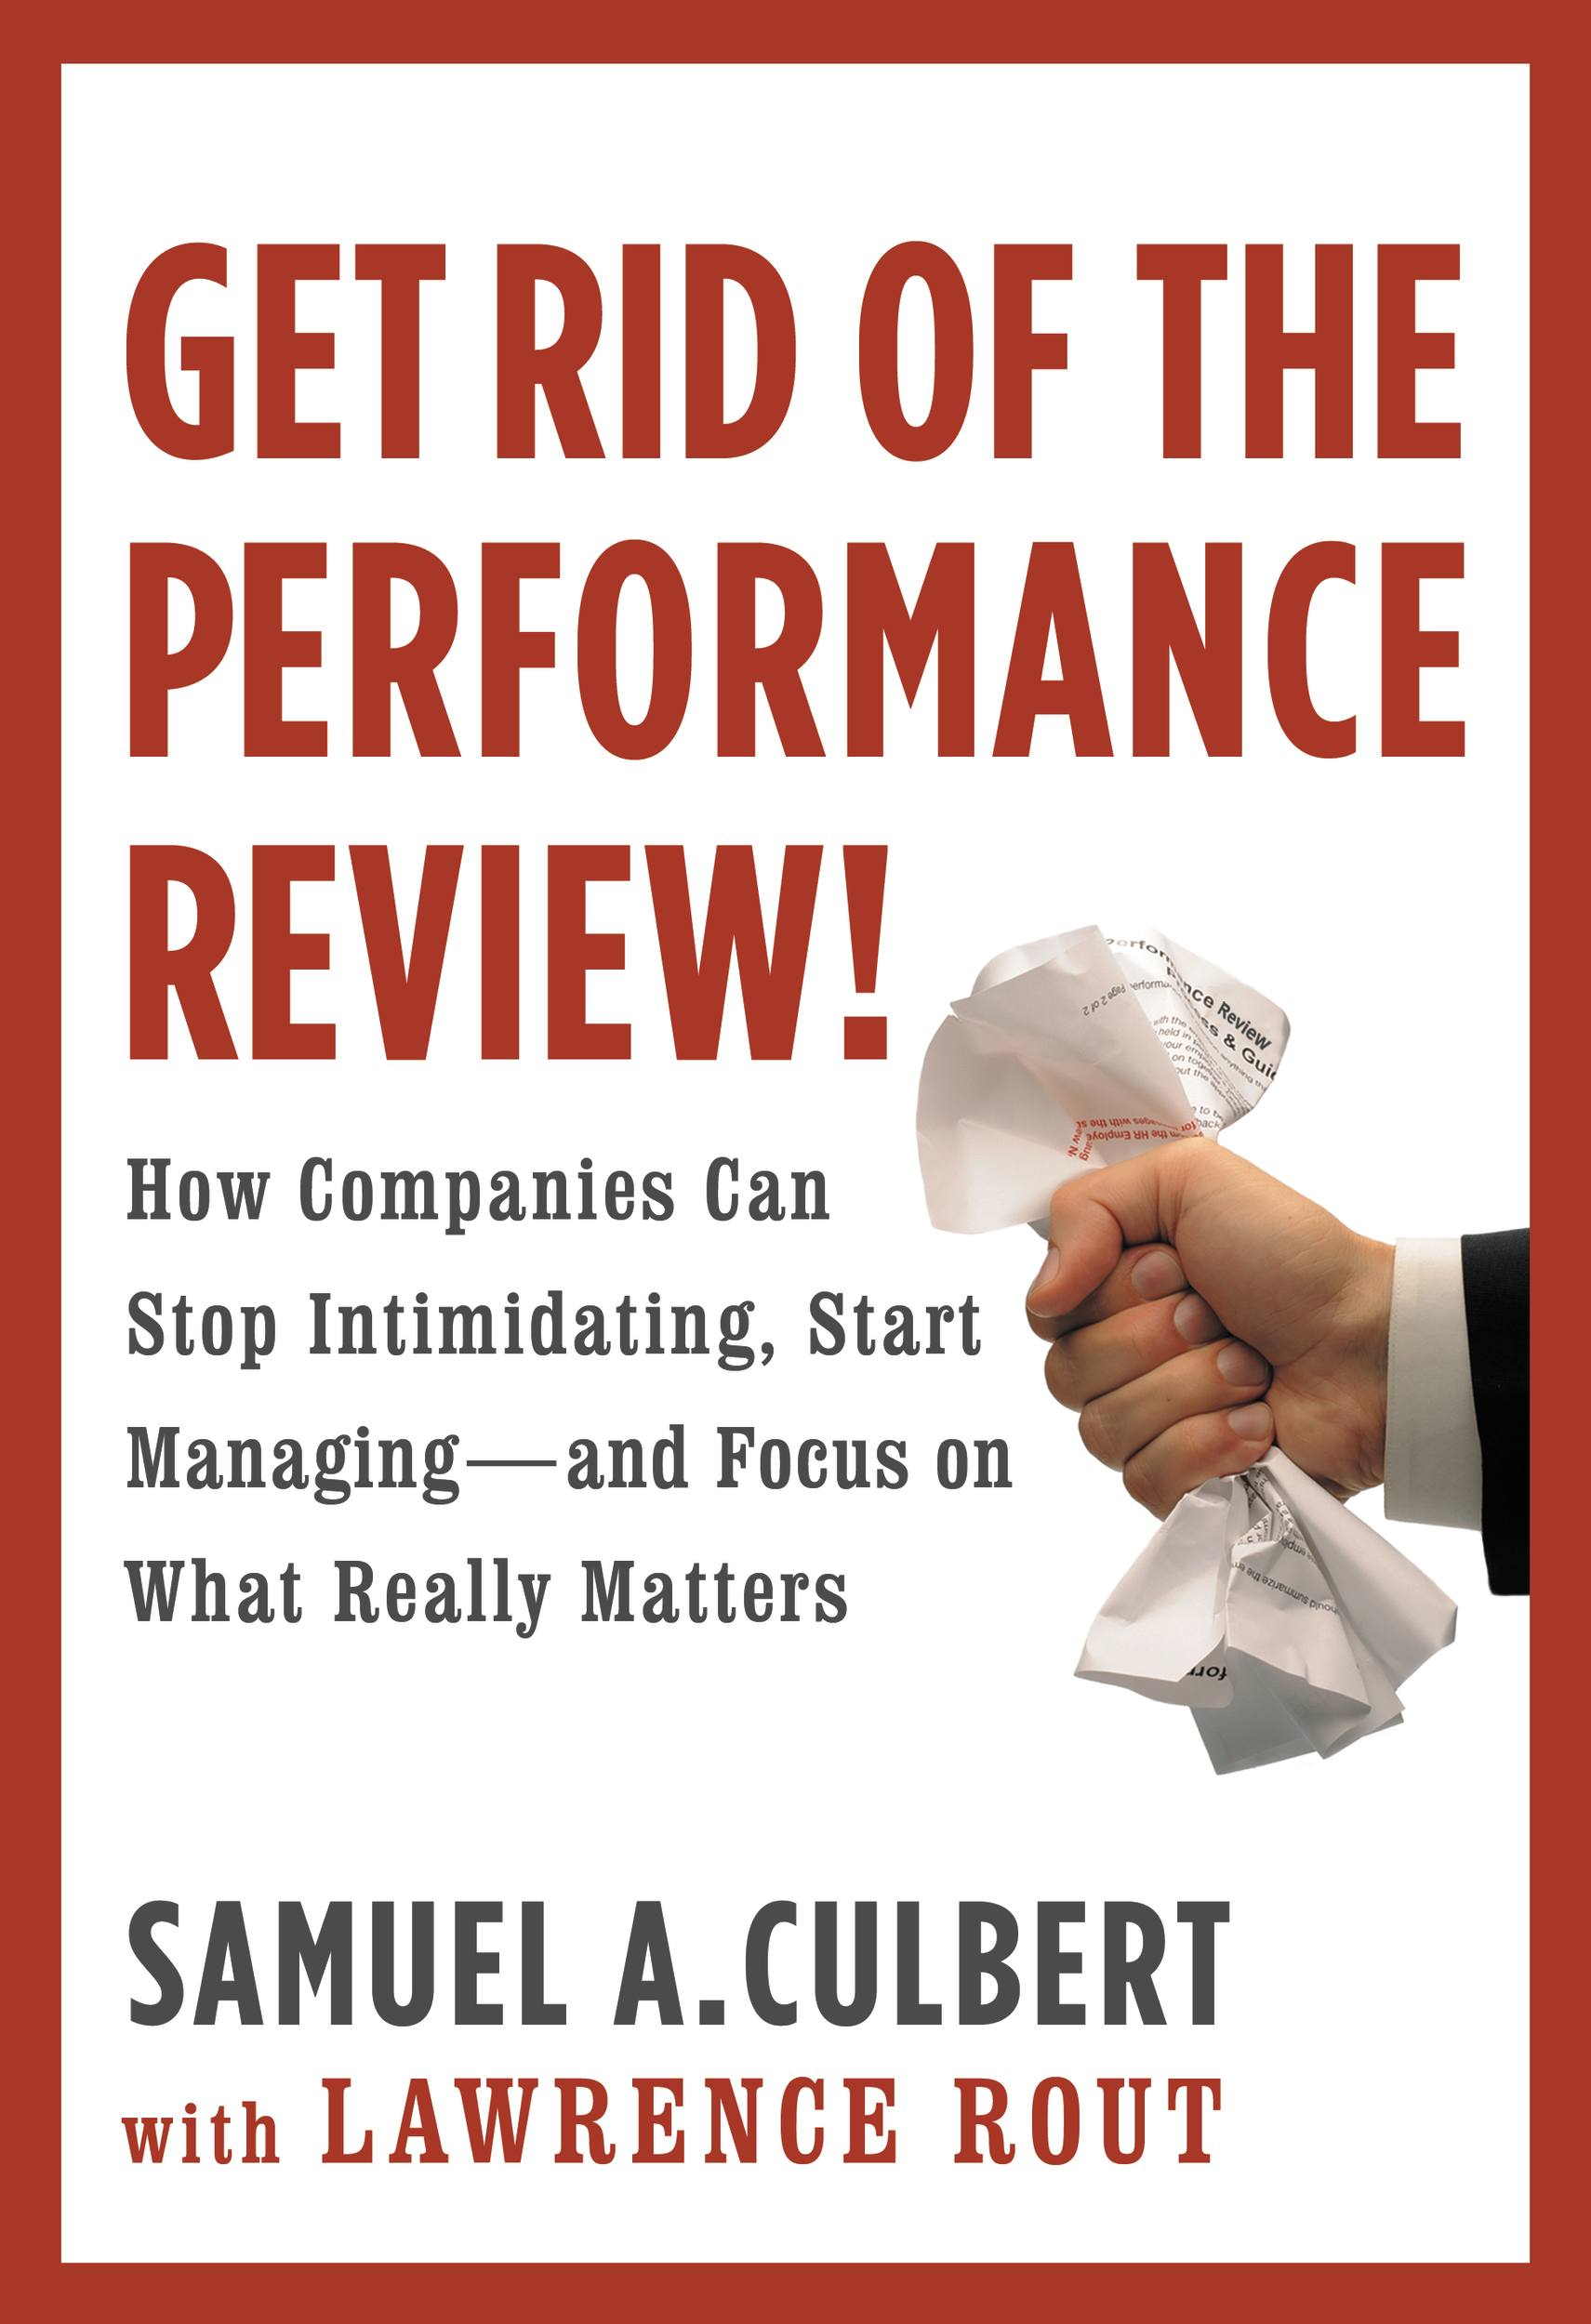 Get Rid of the Performance Review! By: Samuel A. Culbert